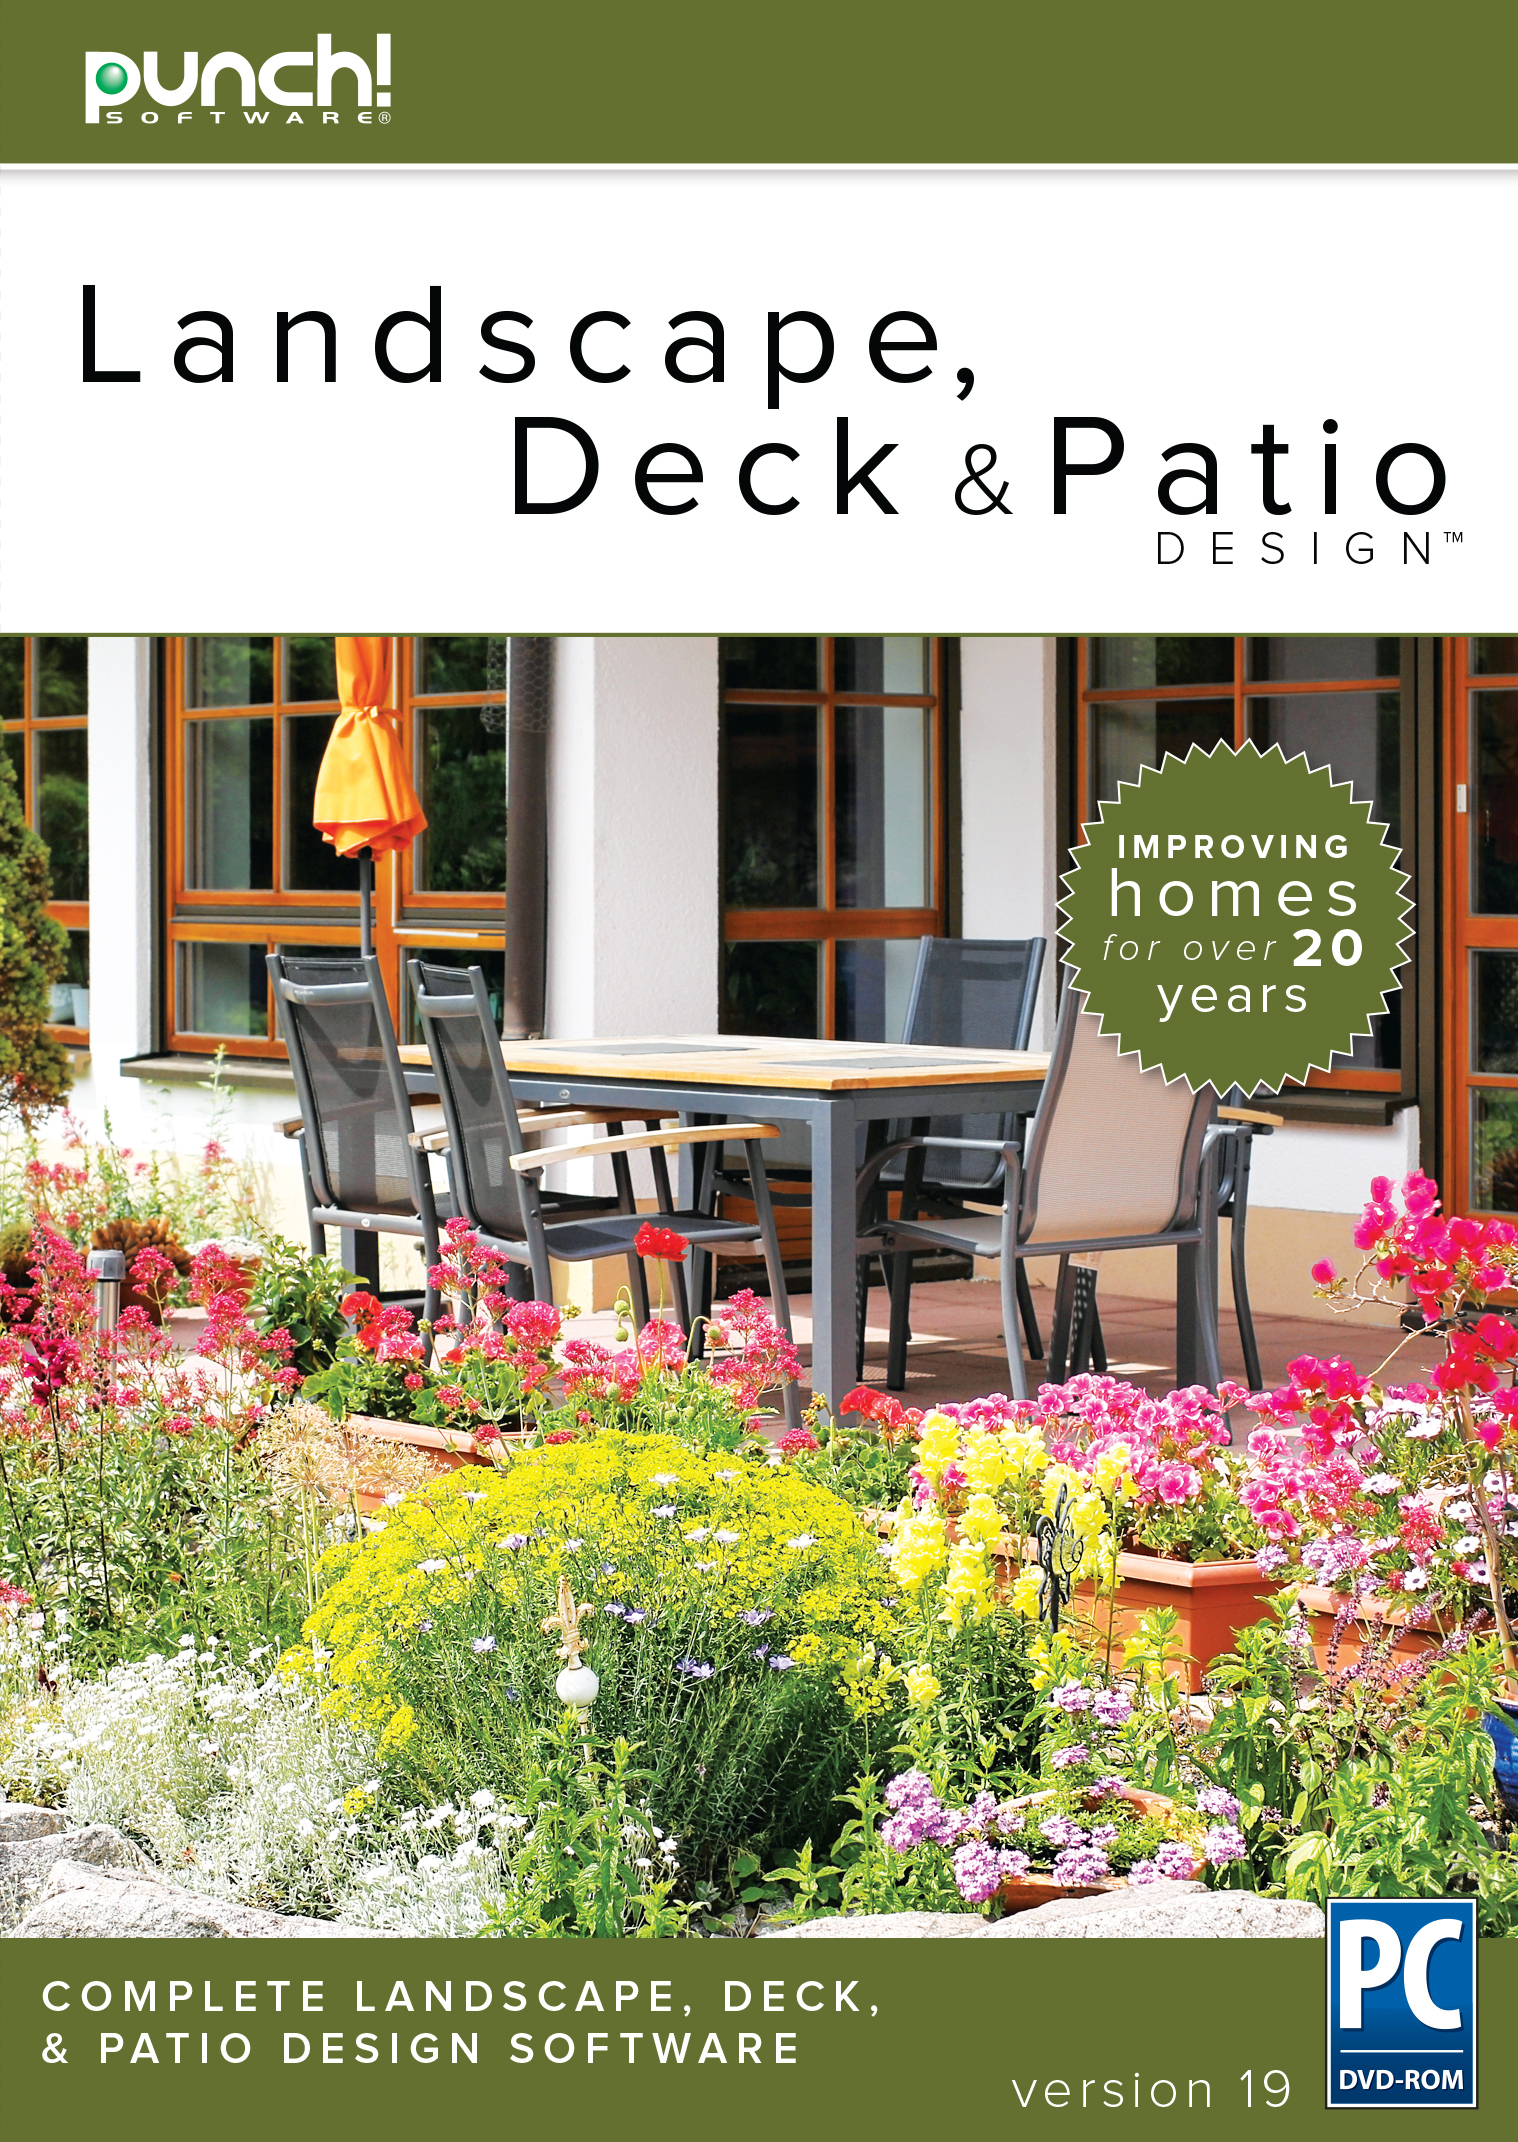 Punch landscape deck patio v17 7 vs sweet home 3d for Home landscape design architectural series v17